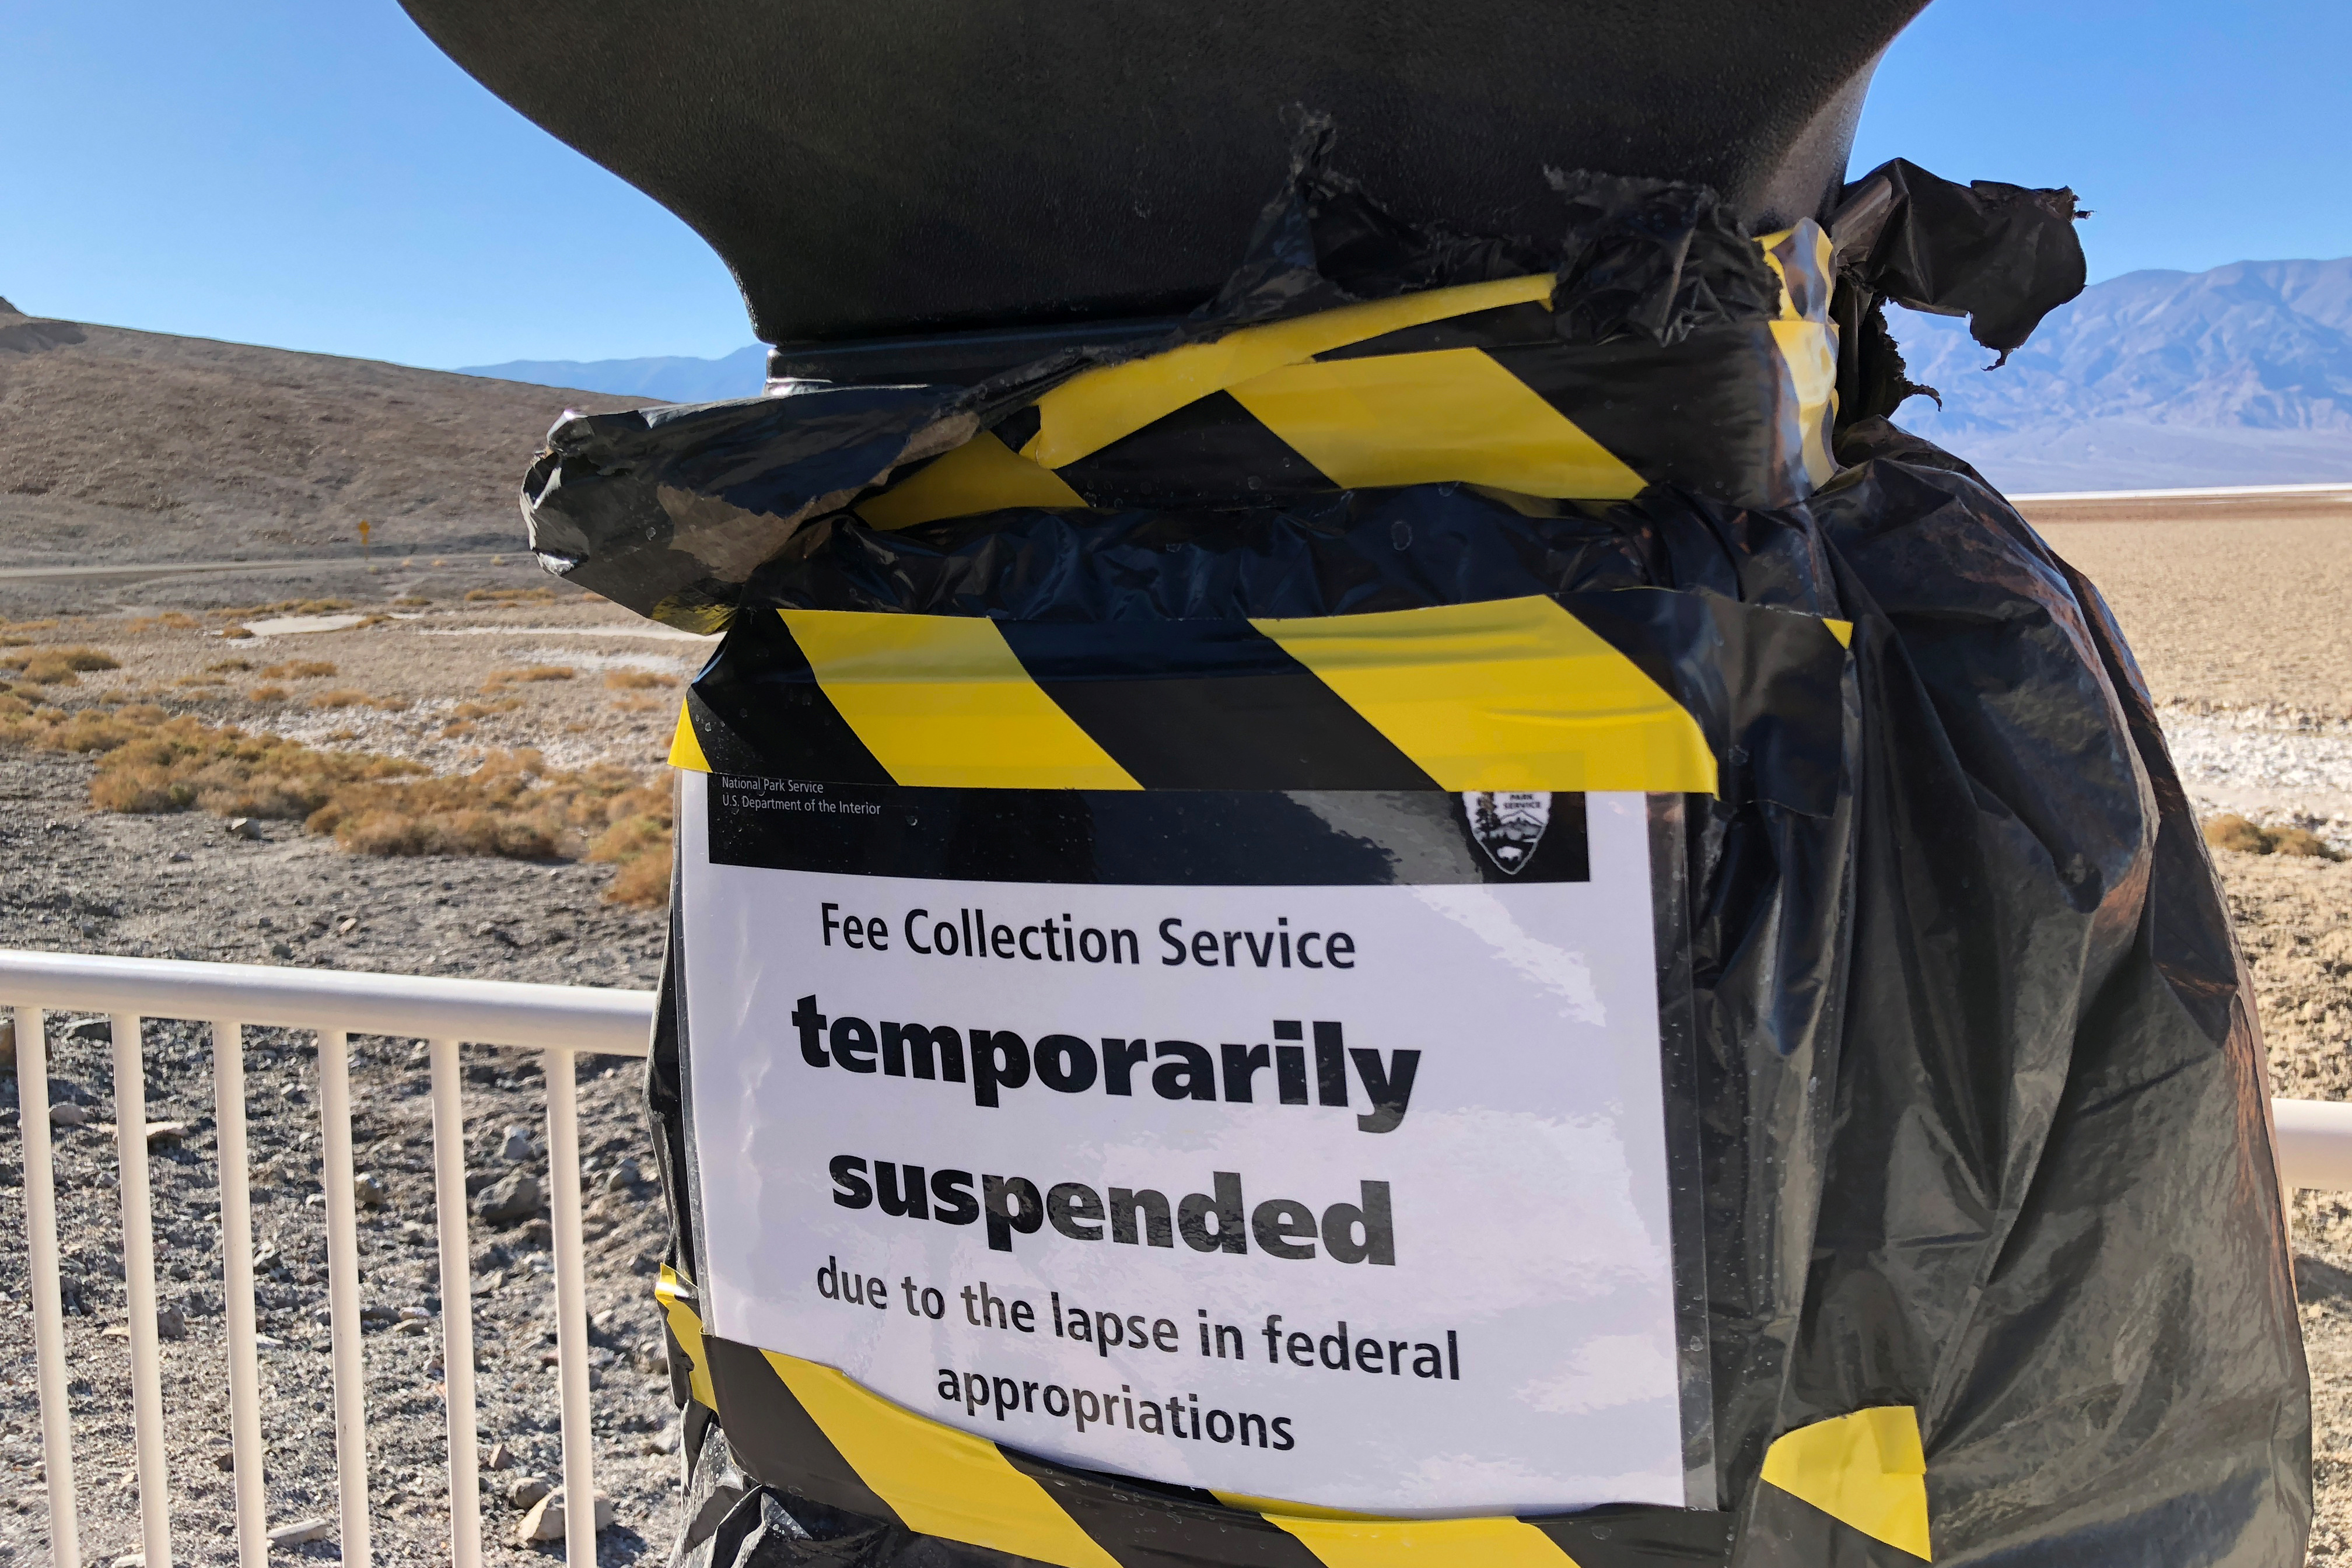 A National Park entrance fee collection service is temporarily suspended at Badwater Basin in Death Valley National Park, the lowest point in North America, during the partial U.S. government shutdown, in Death Valley, California, U.S., Jan. 10, 2019...